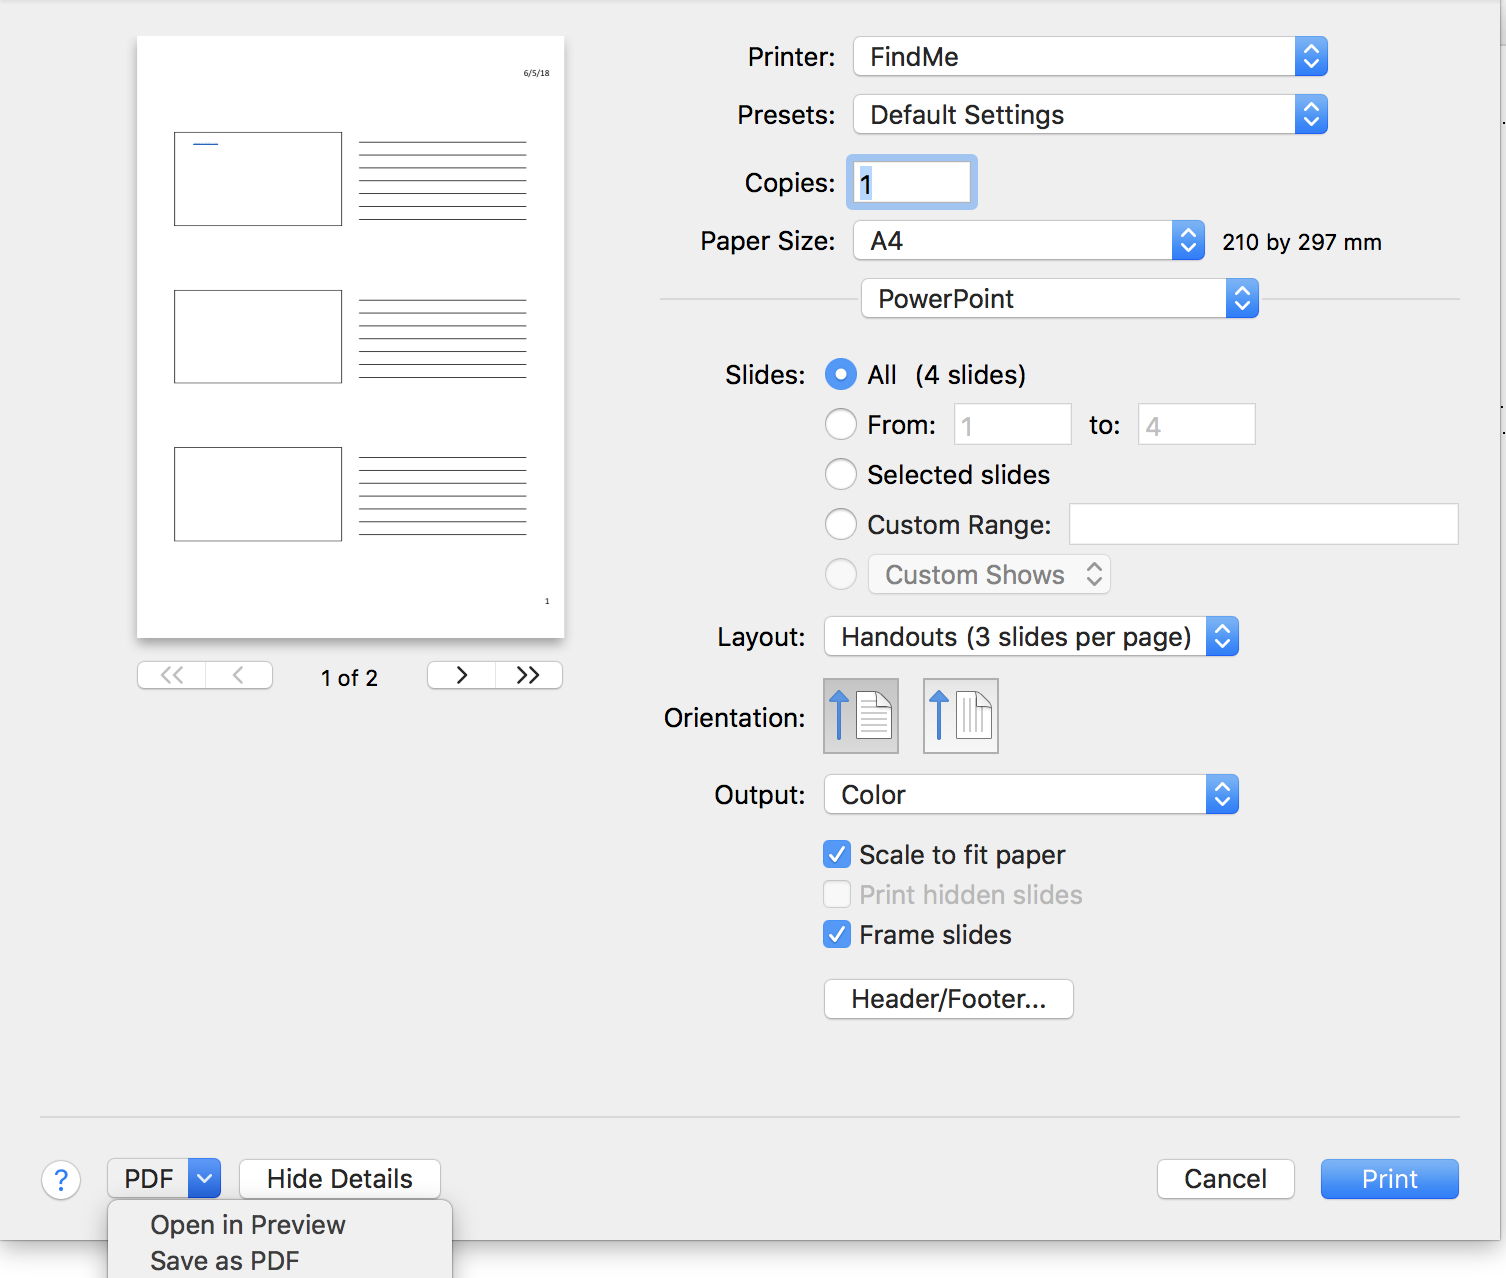 The print settings to save as a PDF.